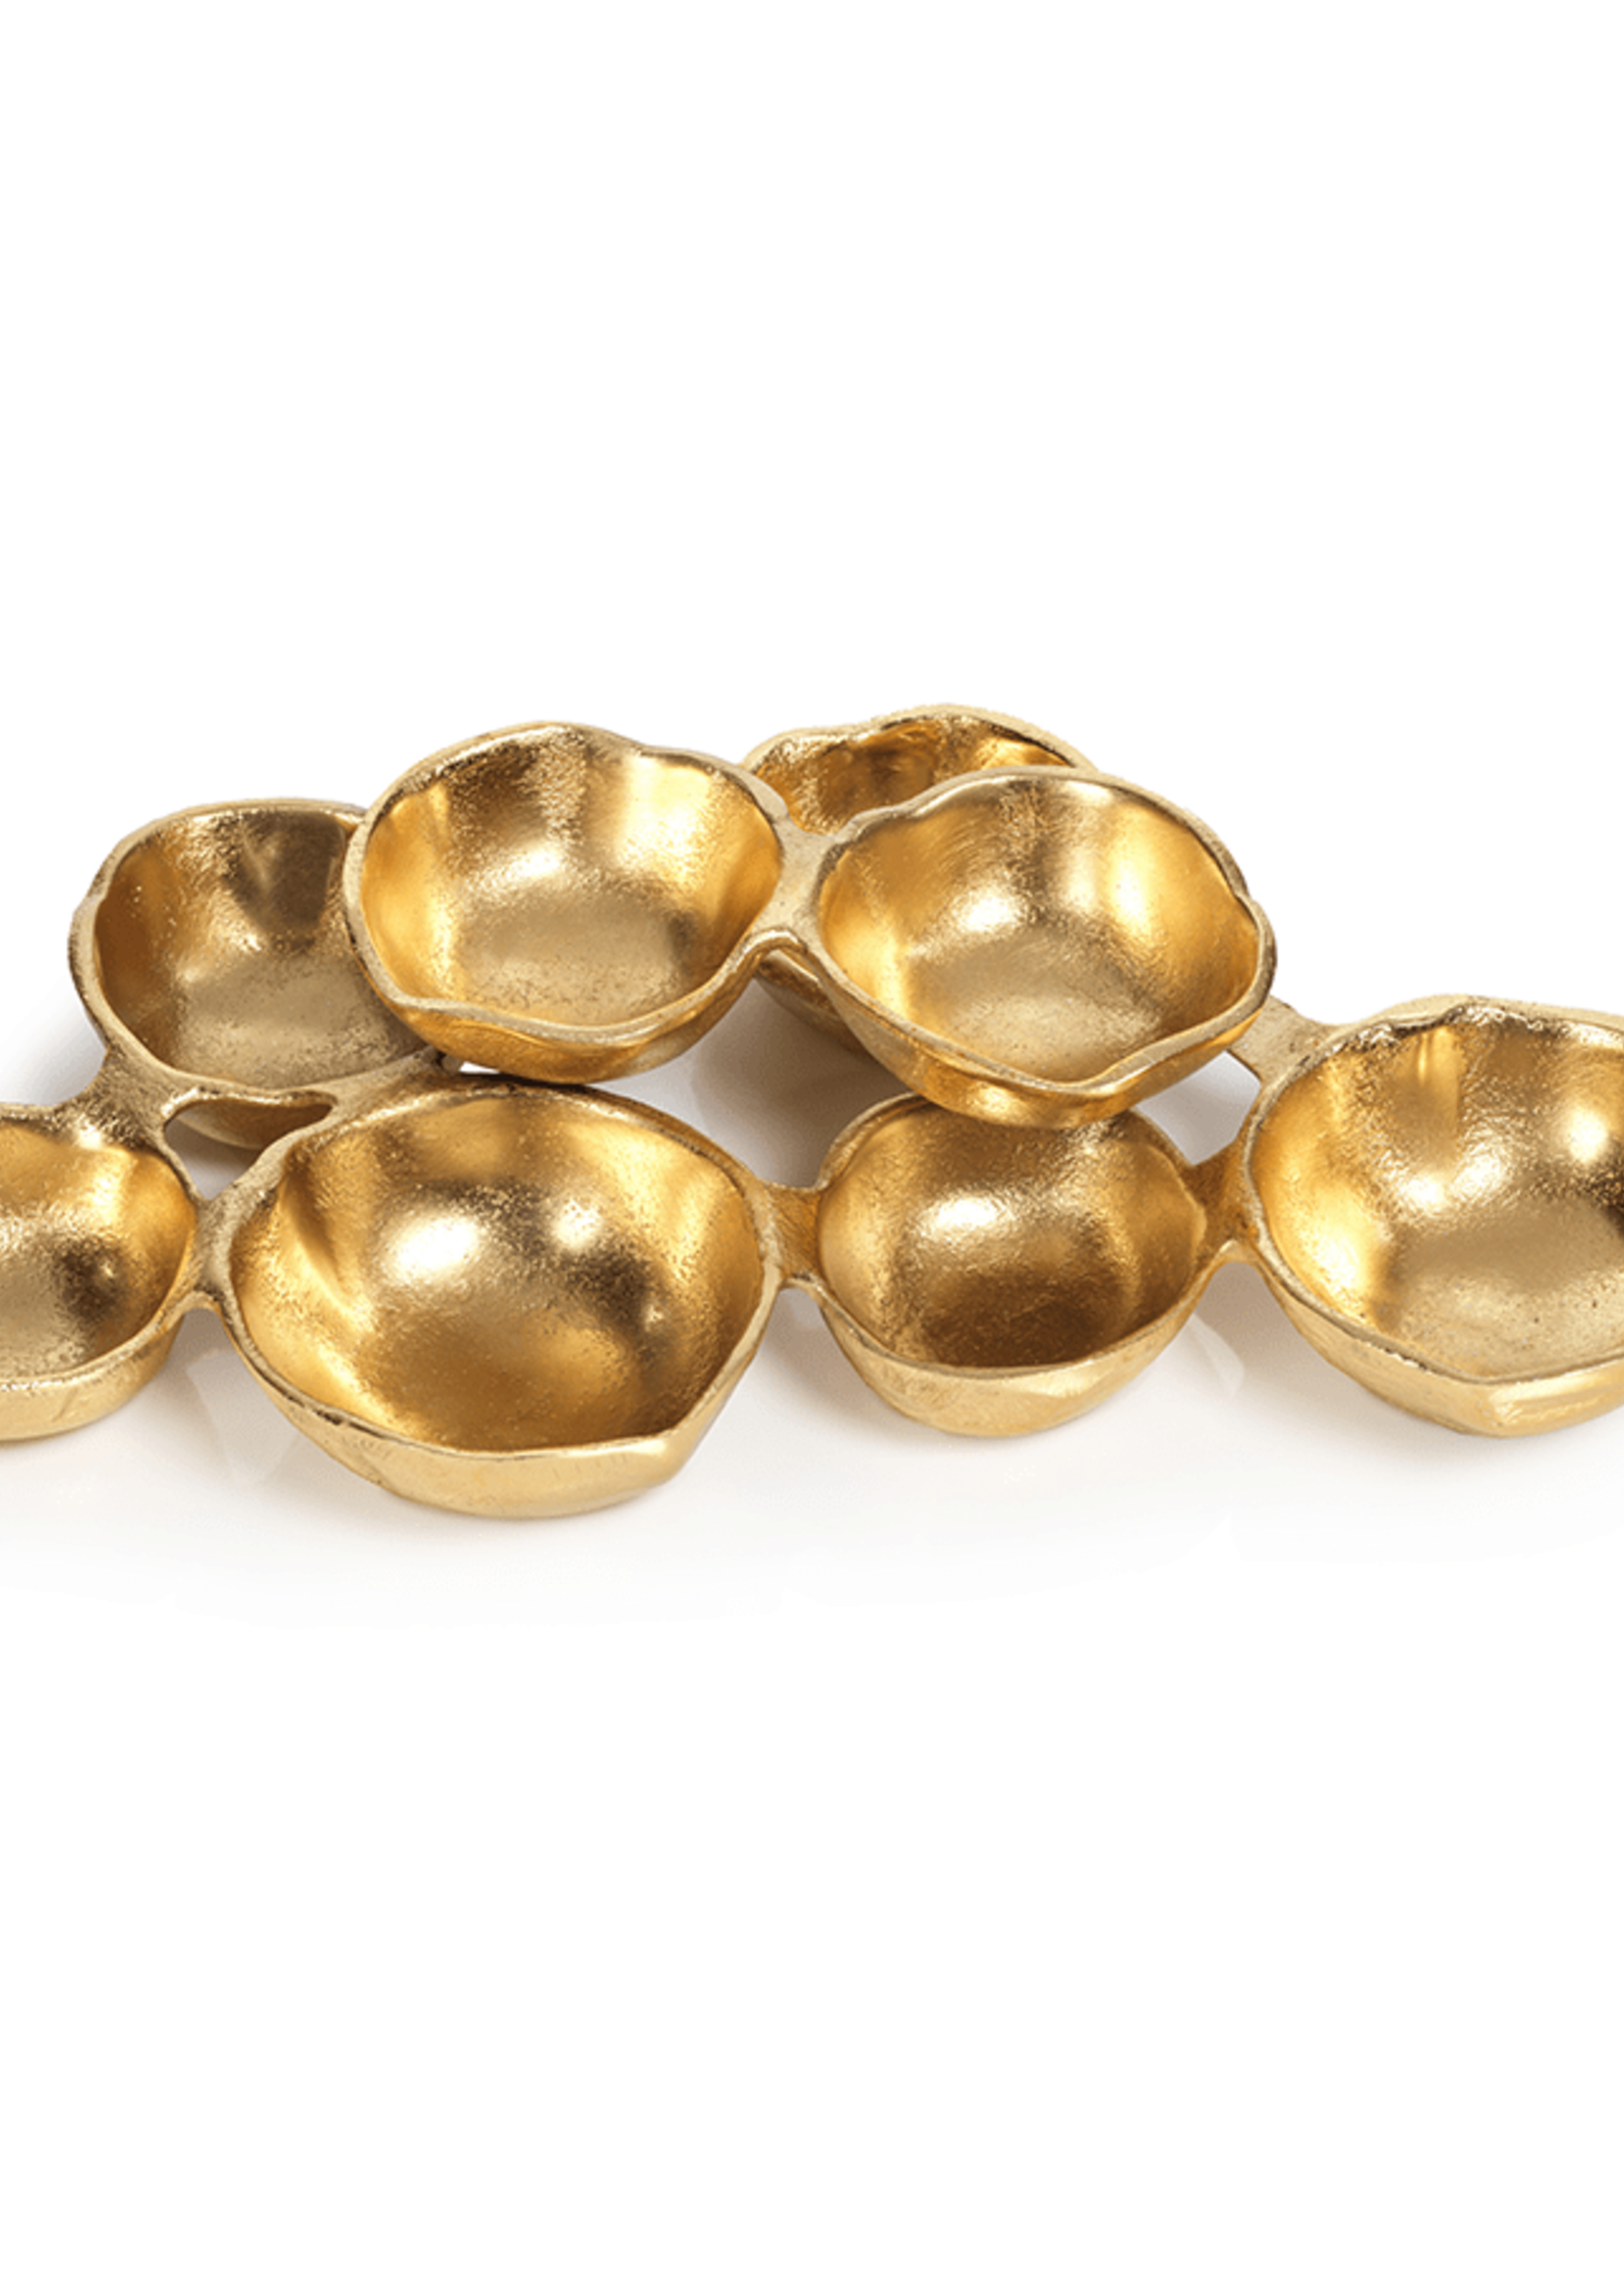 Small Cluster of 8 Serving bowls